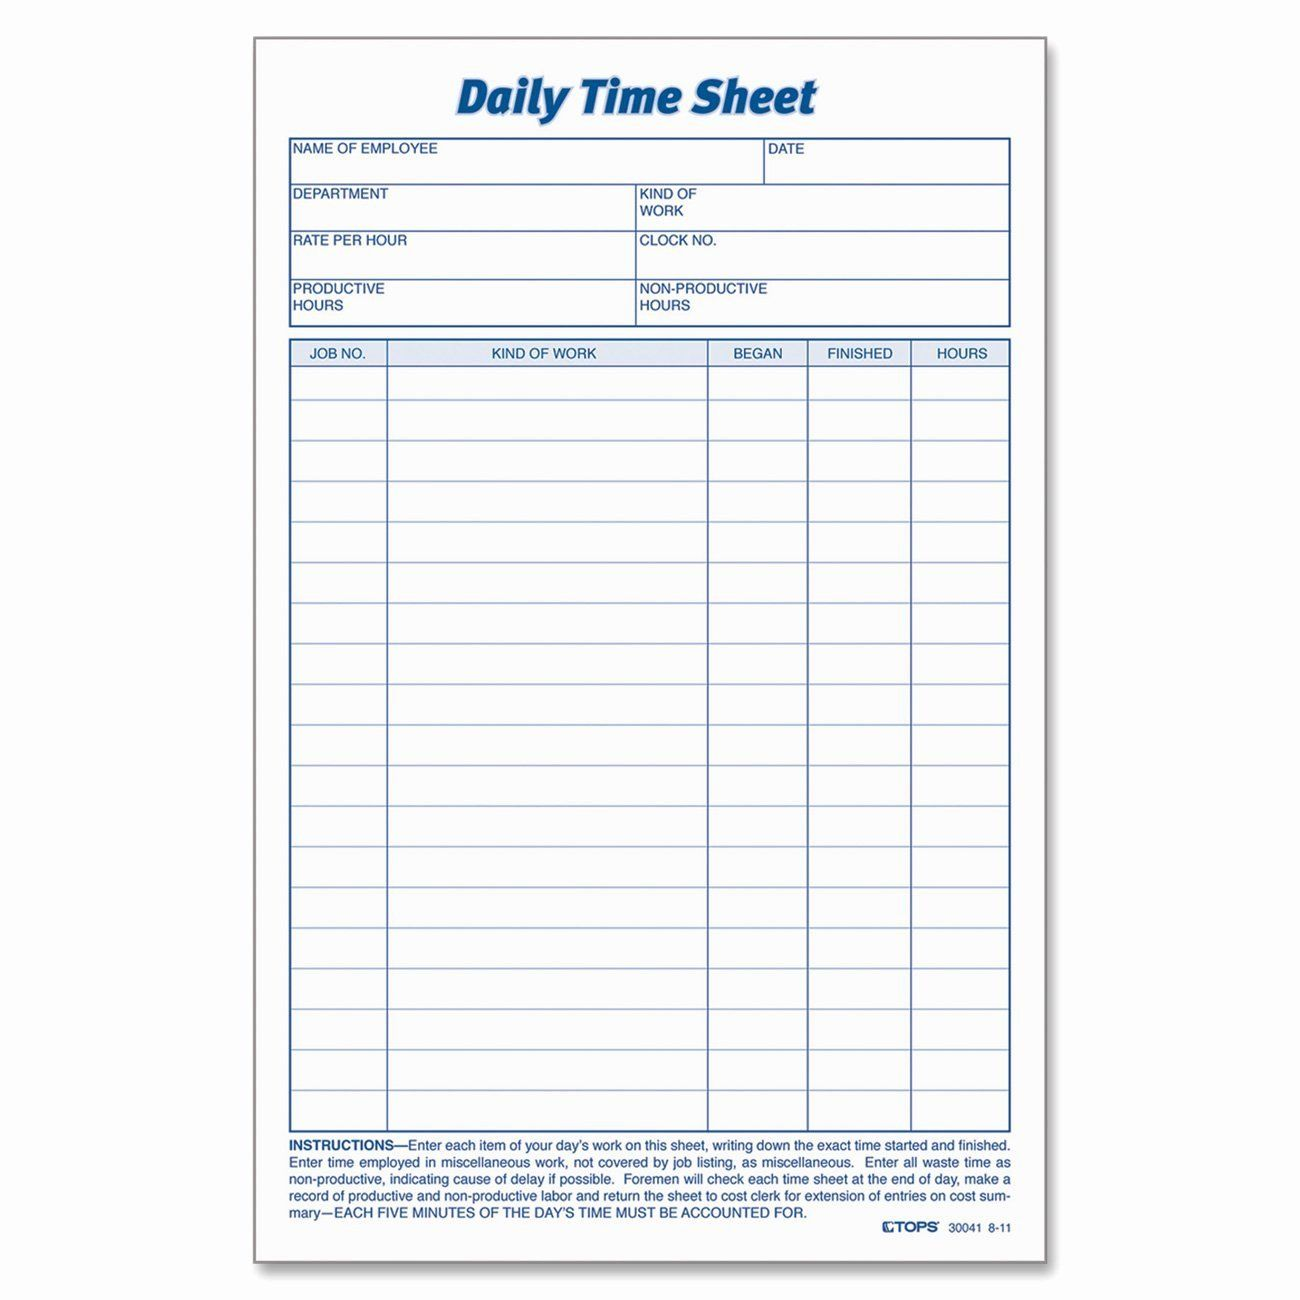 Work Hours Sheet New Daily Task Sheet For Employee Time Sheet Printable Timesheet Template Sheet Sample time card for employees